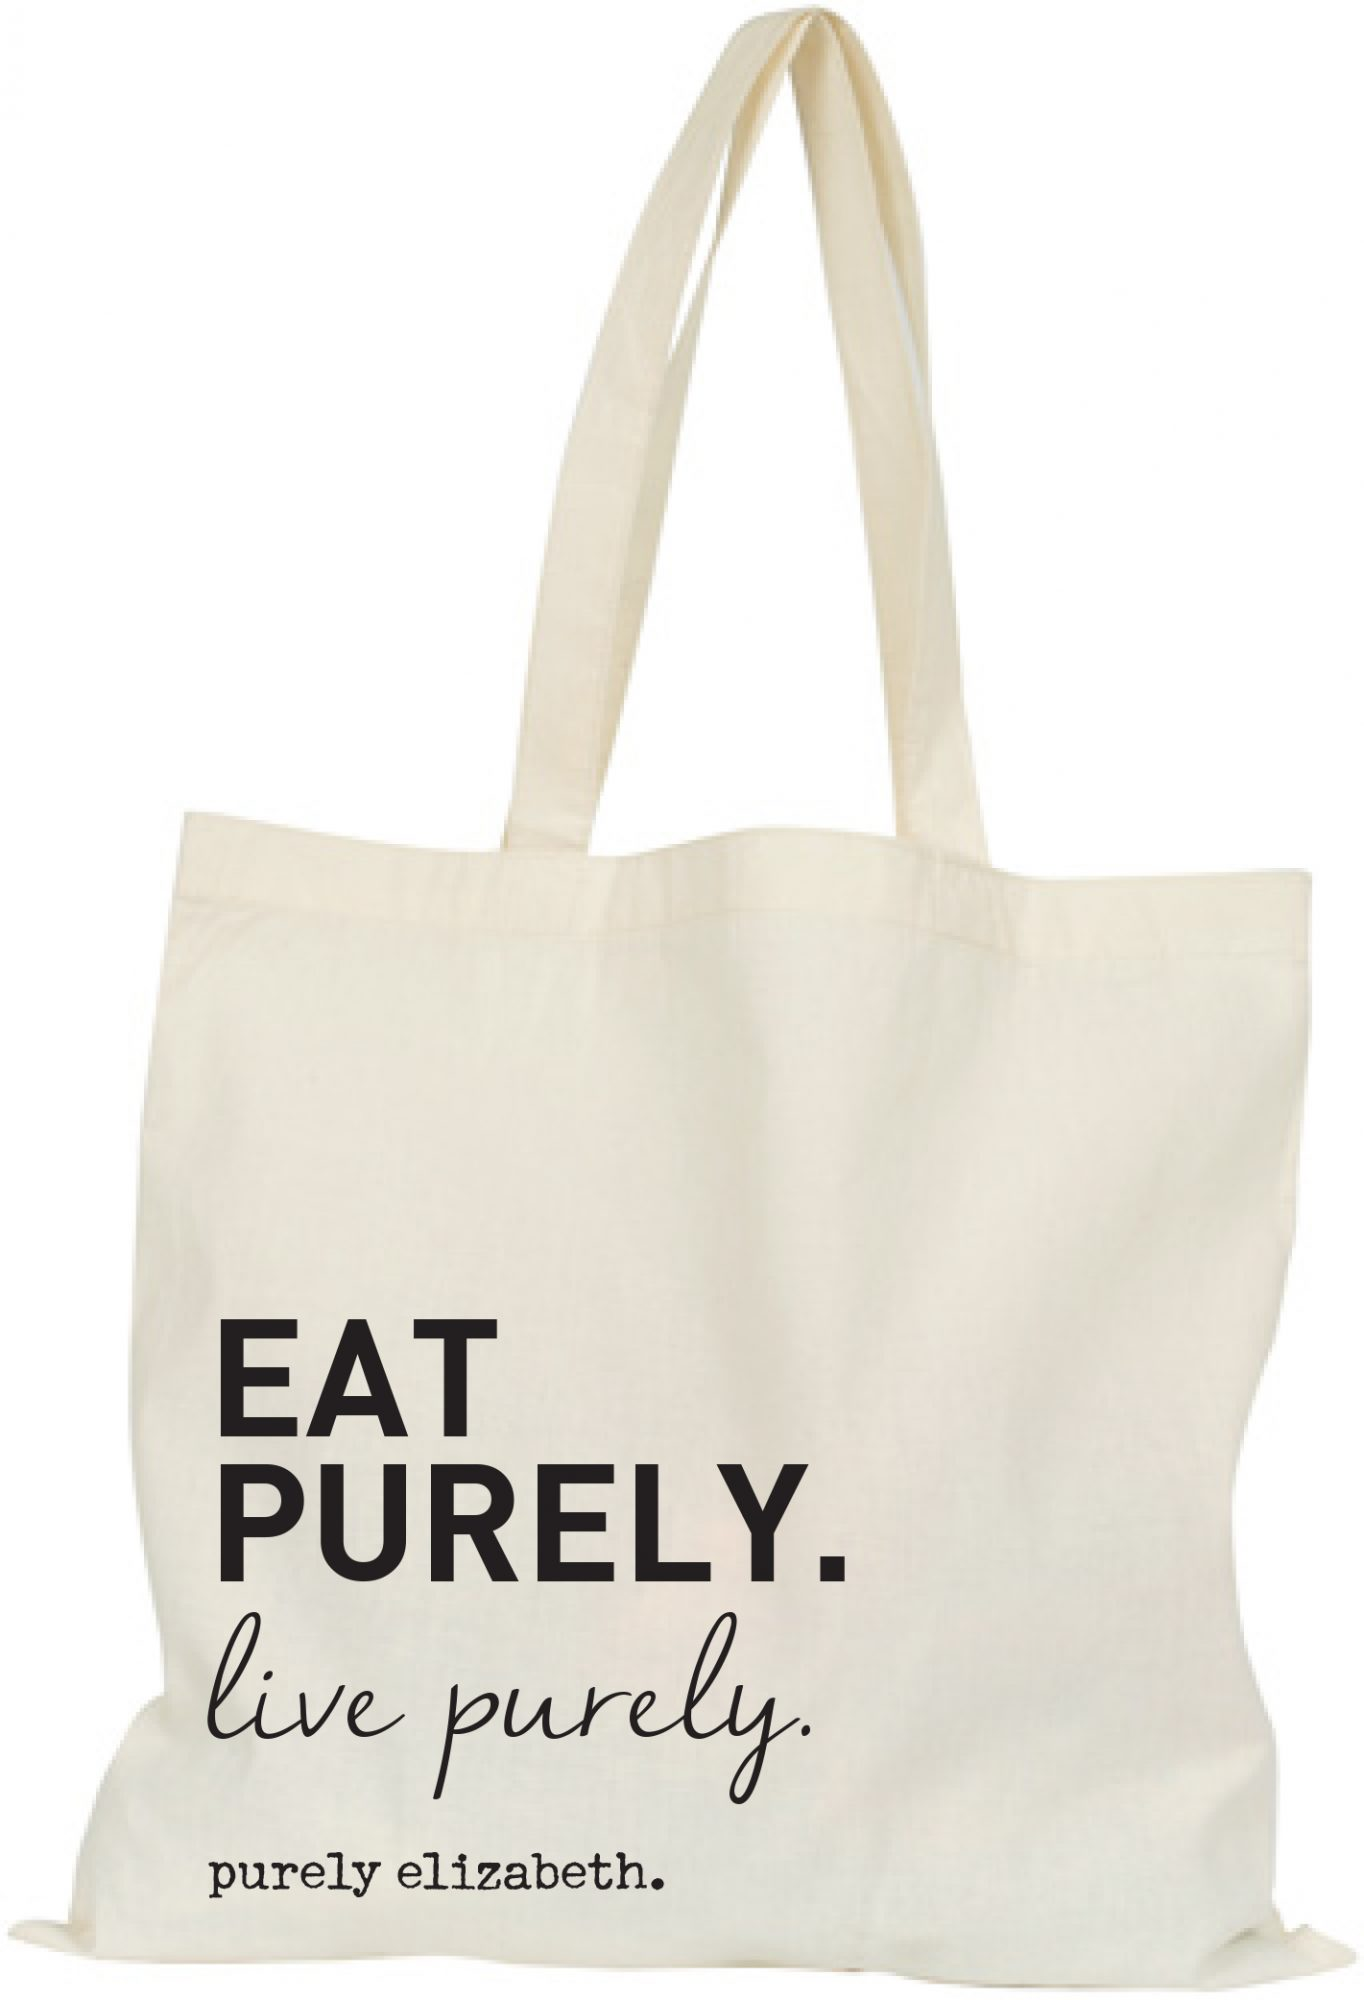 Eat-Purely-Tote-Final-2015-1.jpg